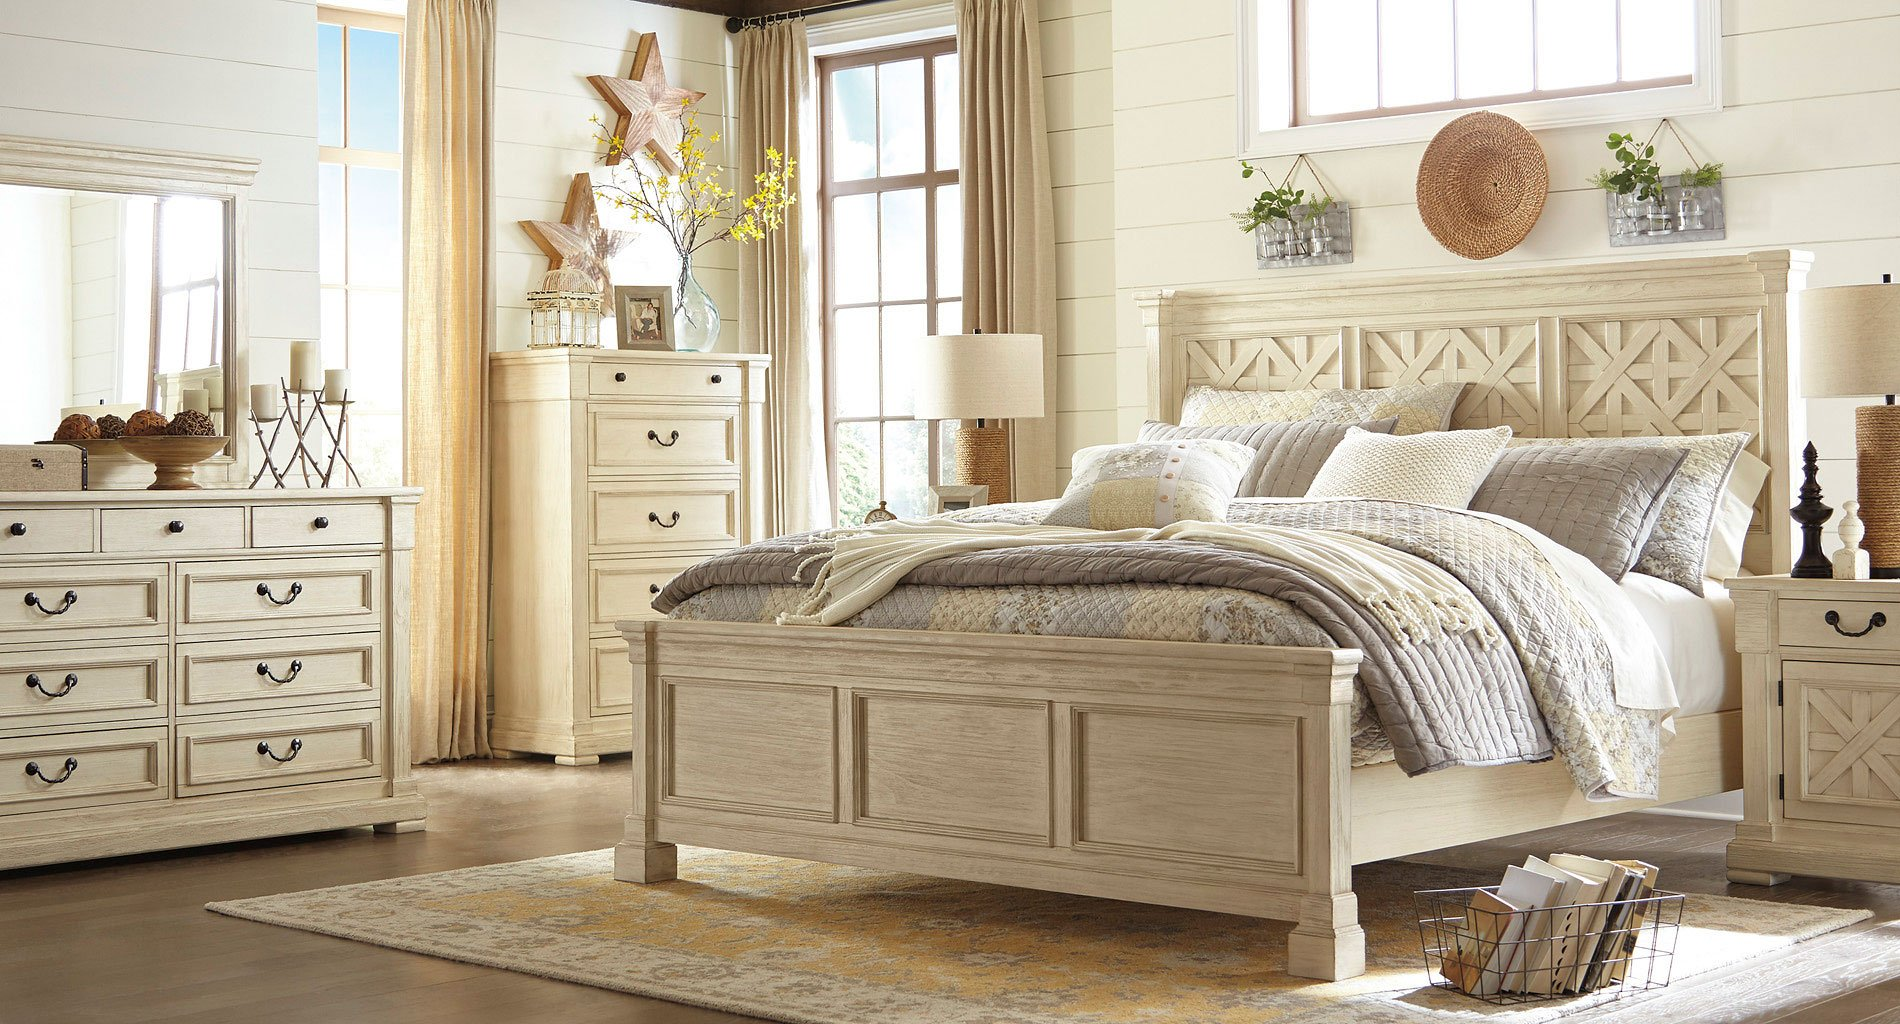 Bolanburg Panel Bedroom Set by Signature Design by Ashley  FurniturePick